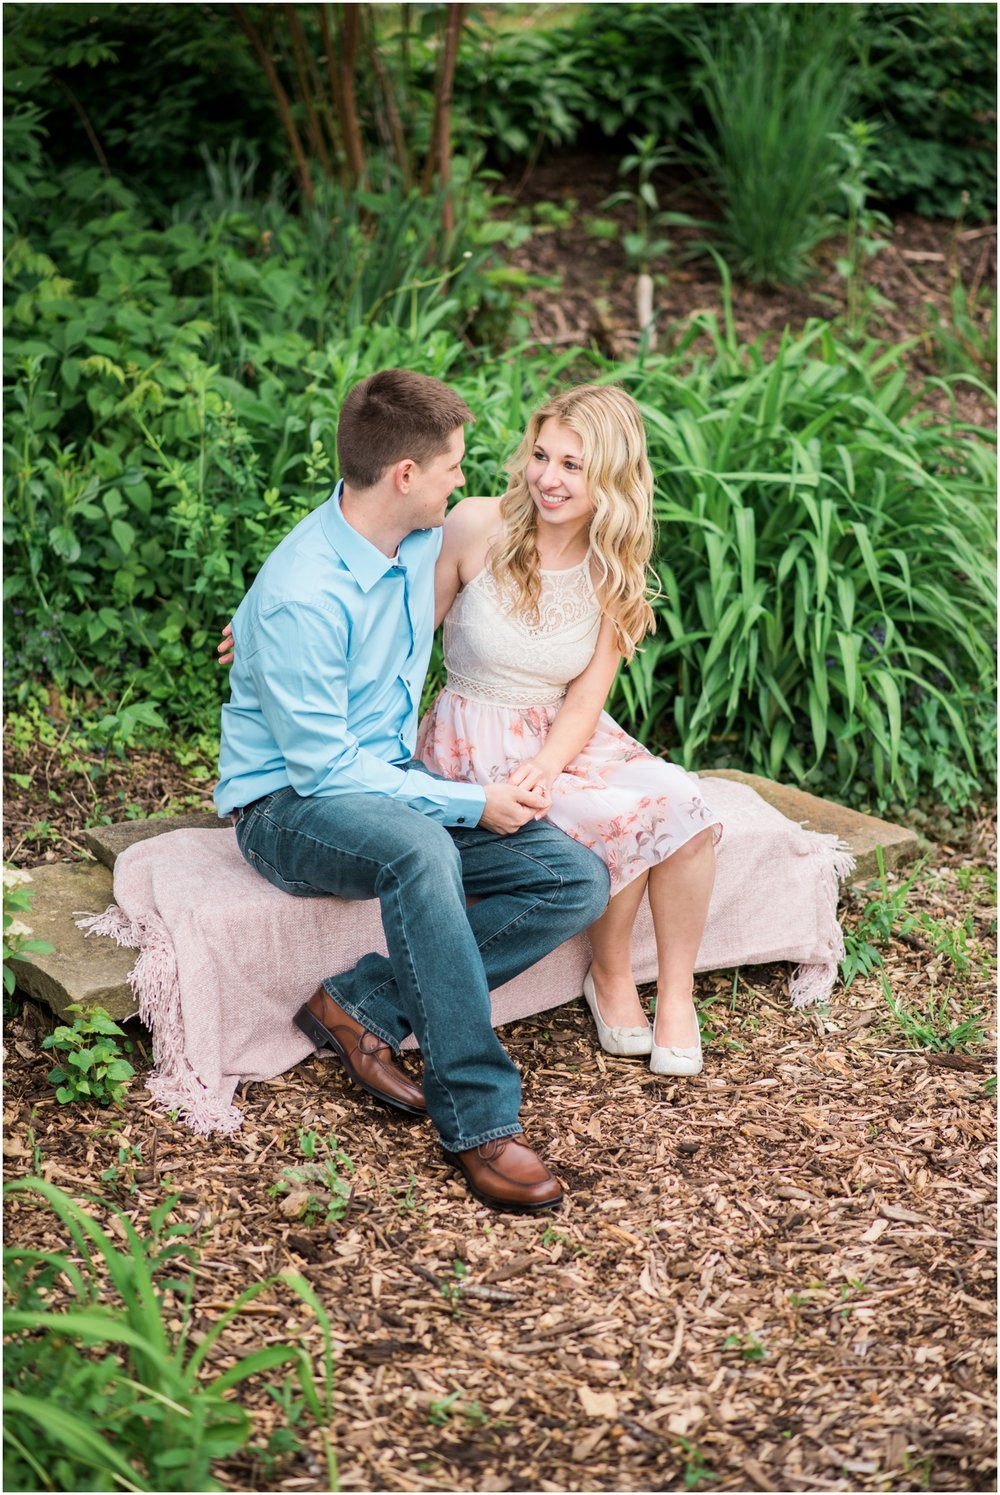 Paquette_Park_Portage_WI_Engagement_Photos_Heather_and_Derek_0010.jpg